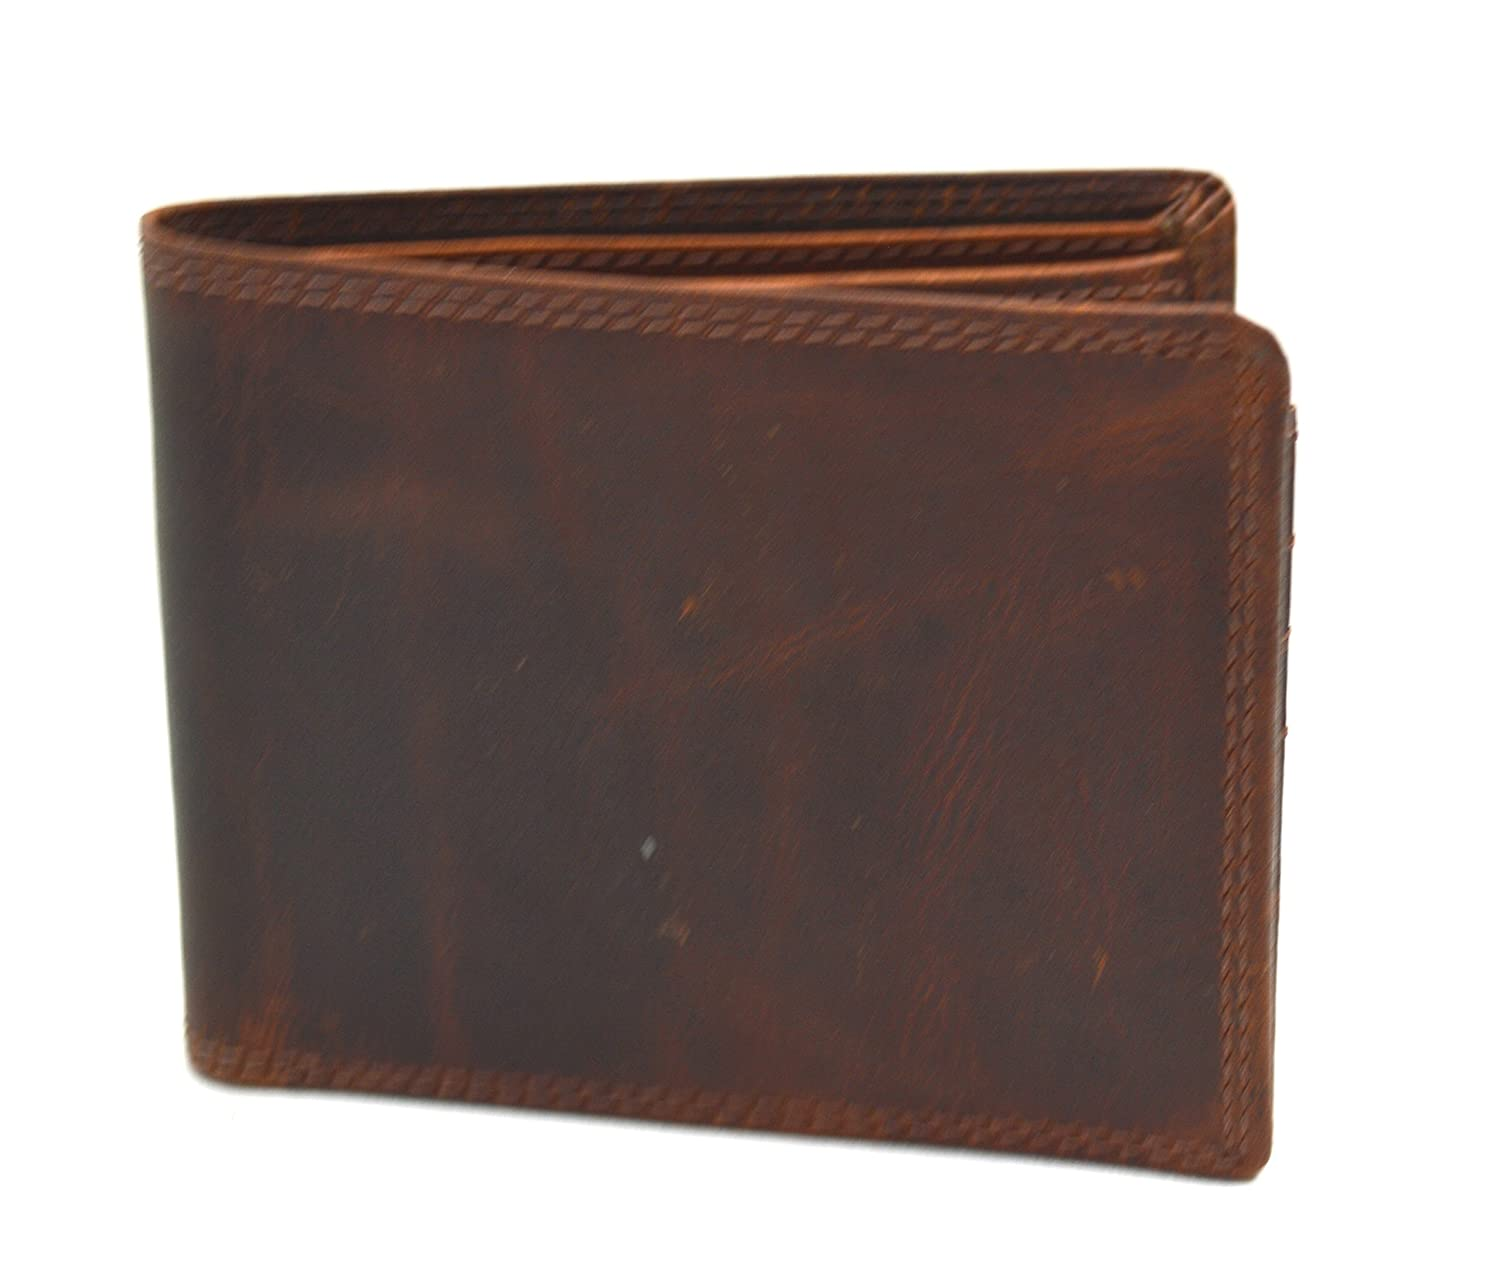 5713cae1b497e8 Buffalo Wild Edition Leather Gents Wallet in Sleek Design: Amazon.co.uk:  Clothing